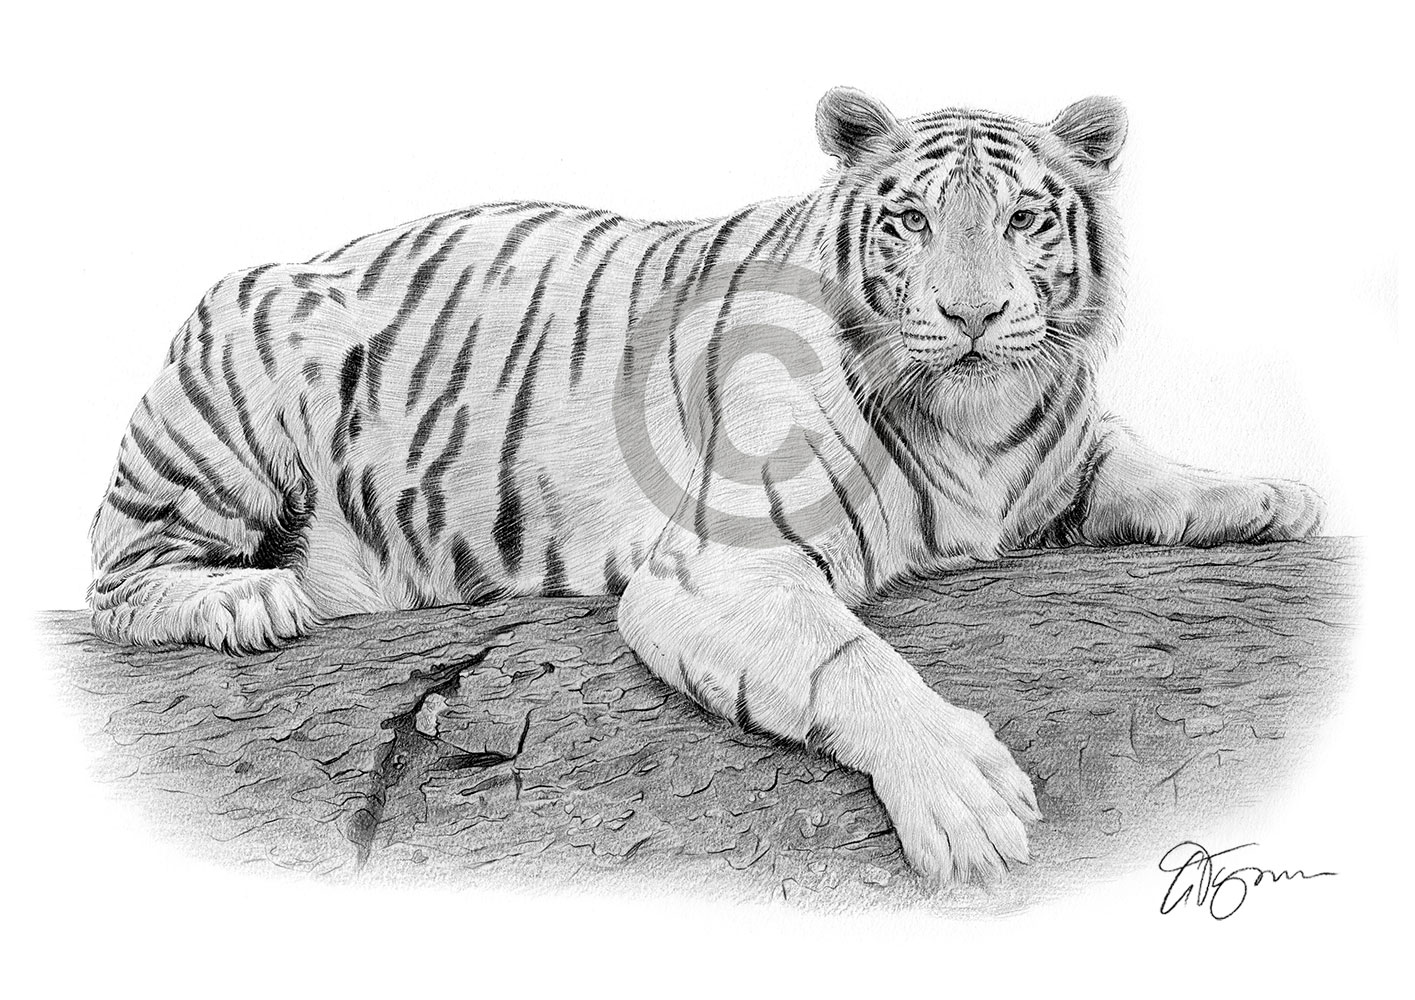 White Bengal Tiger pencil drawing by artist Gary Tymon